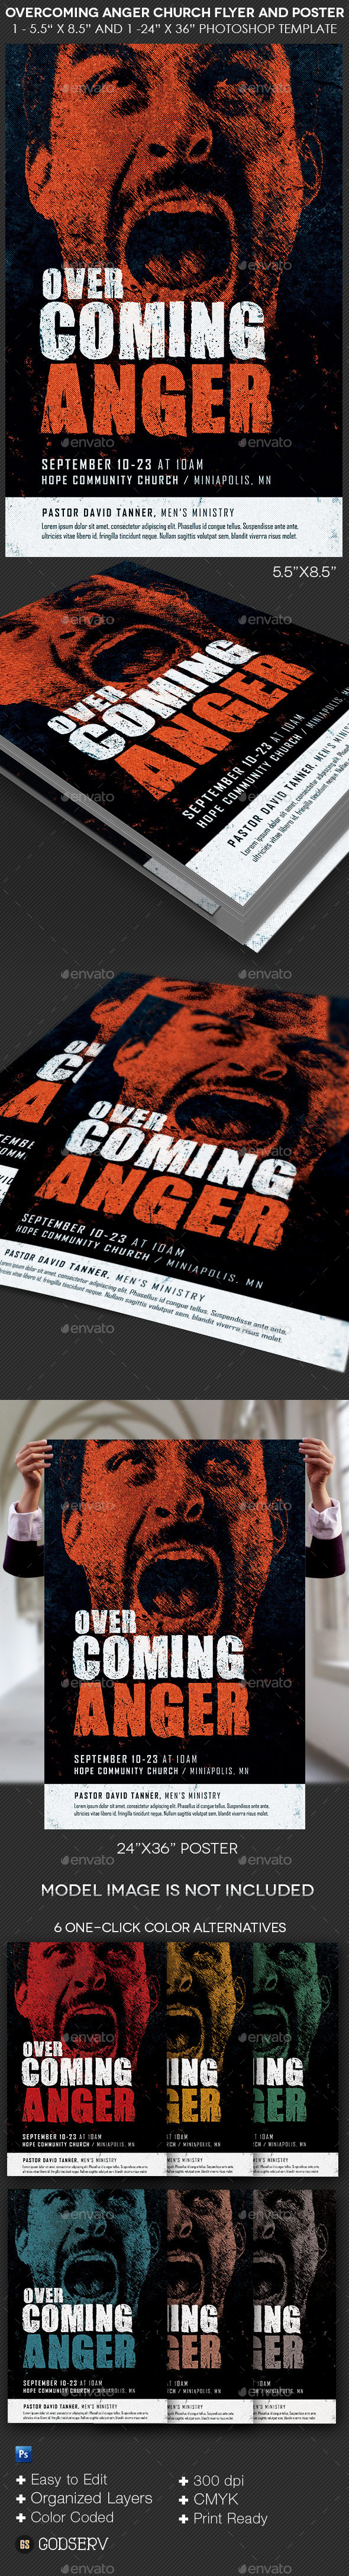 GraphicRiver Overcoming Anger Church Flyer and Poster Template 10895849